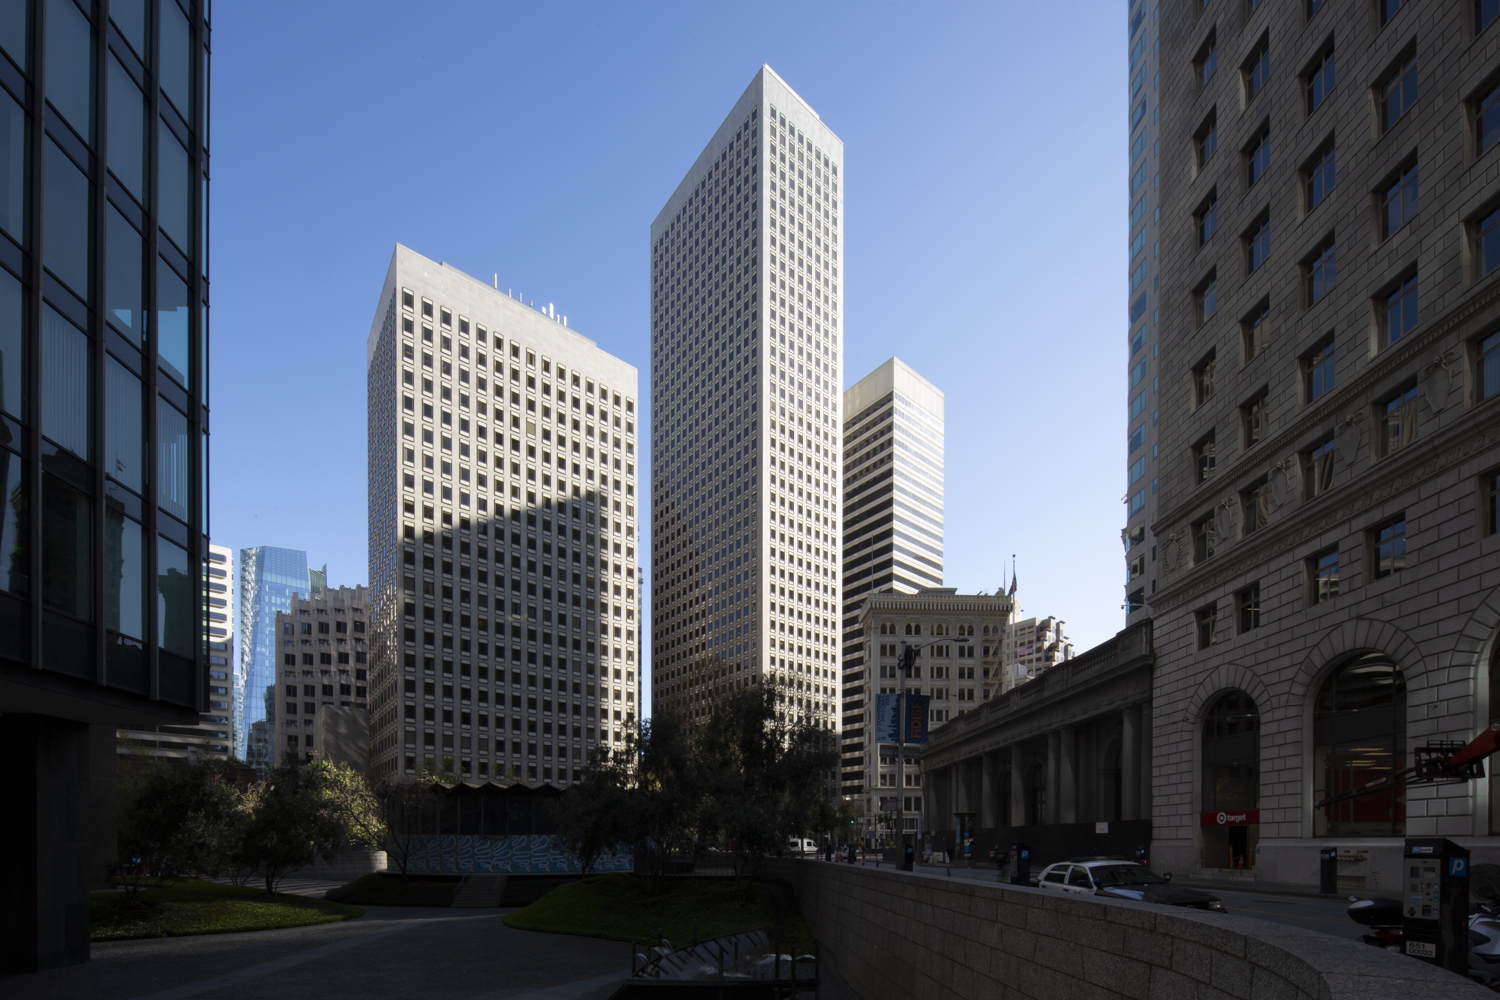 575 Market Street from the One Bush plaza, image by Andrew Campbell Nelson